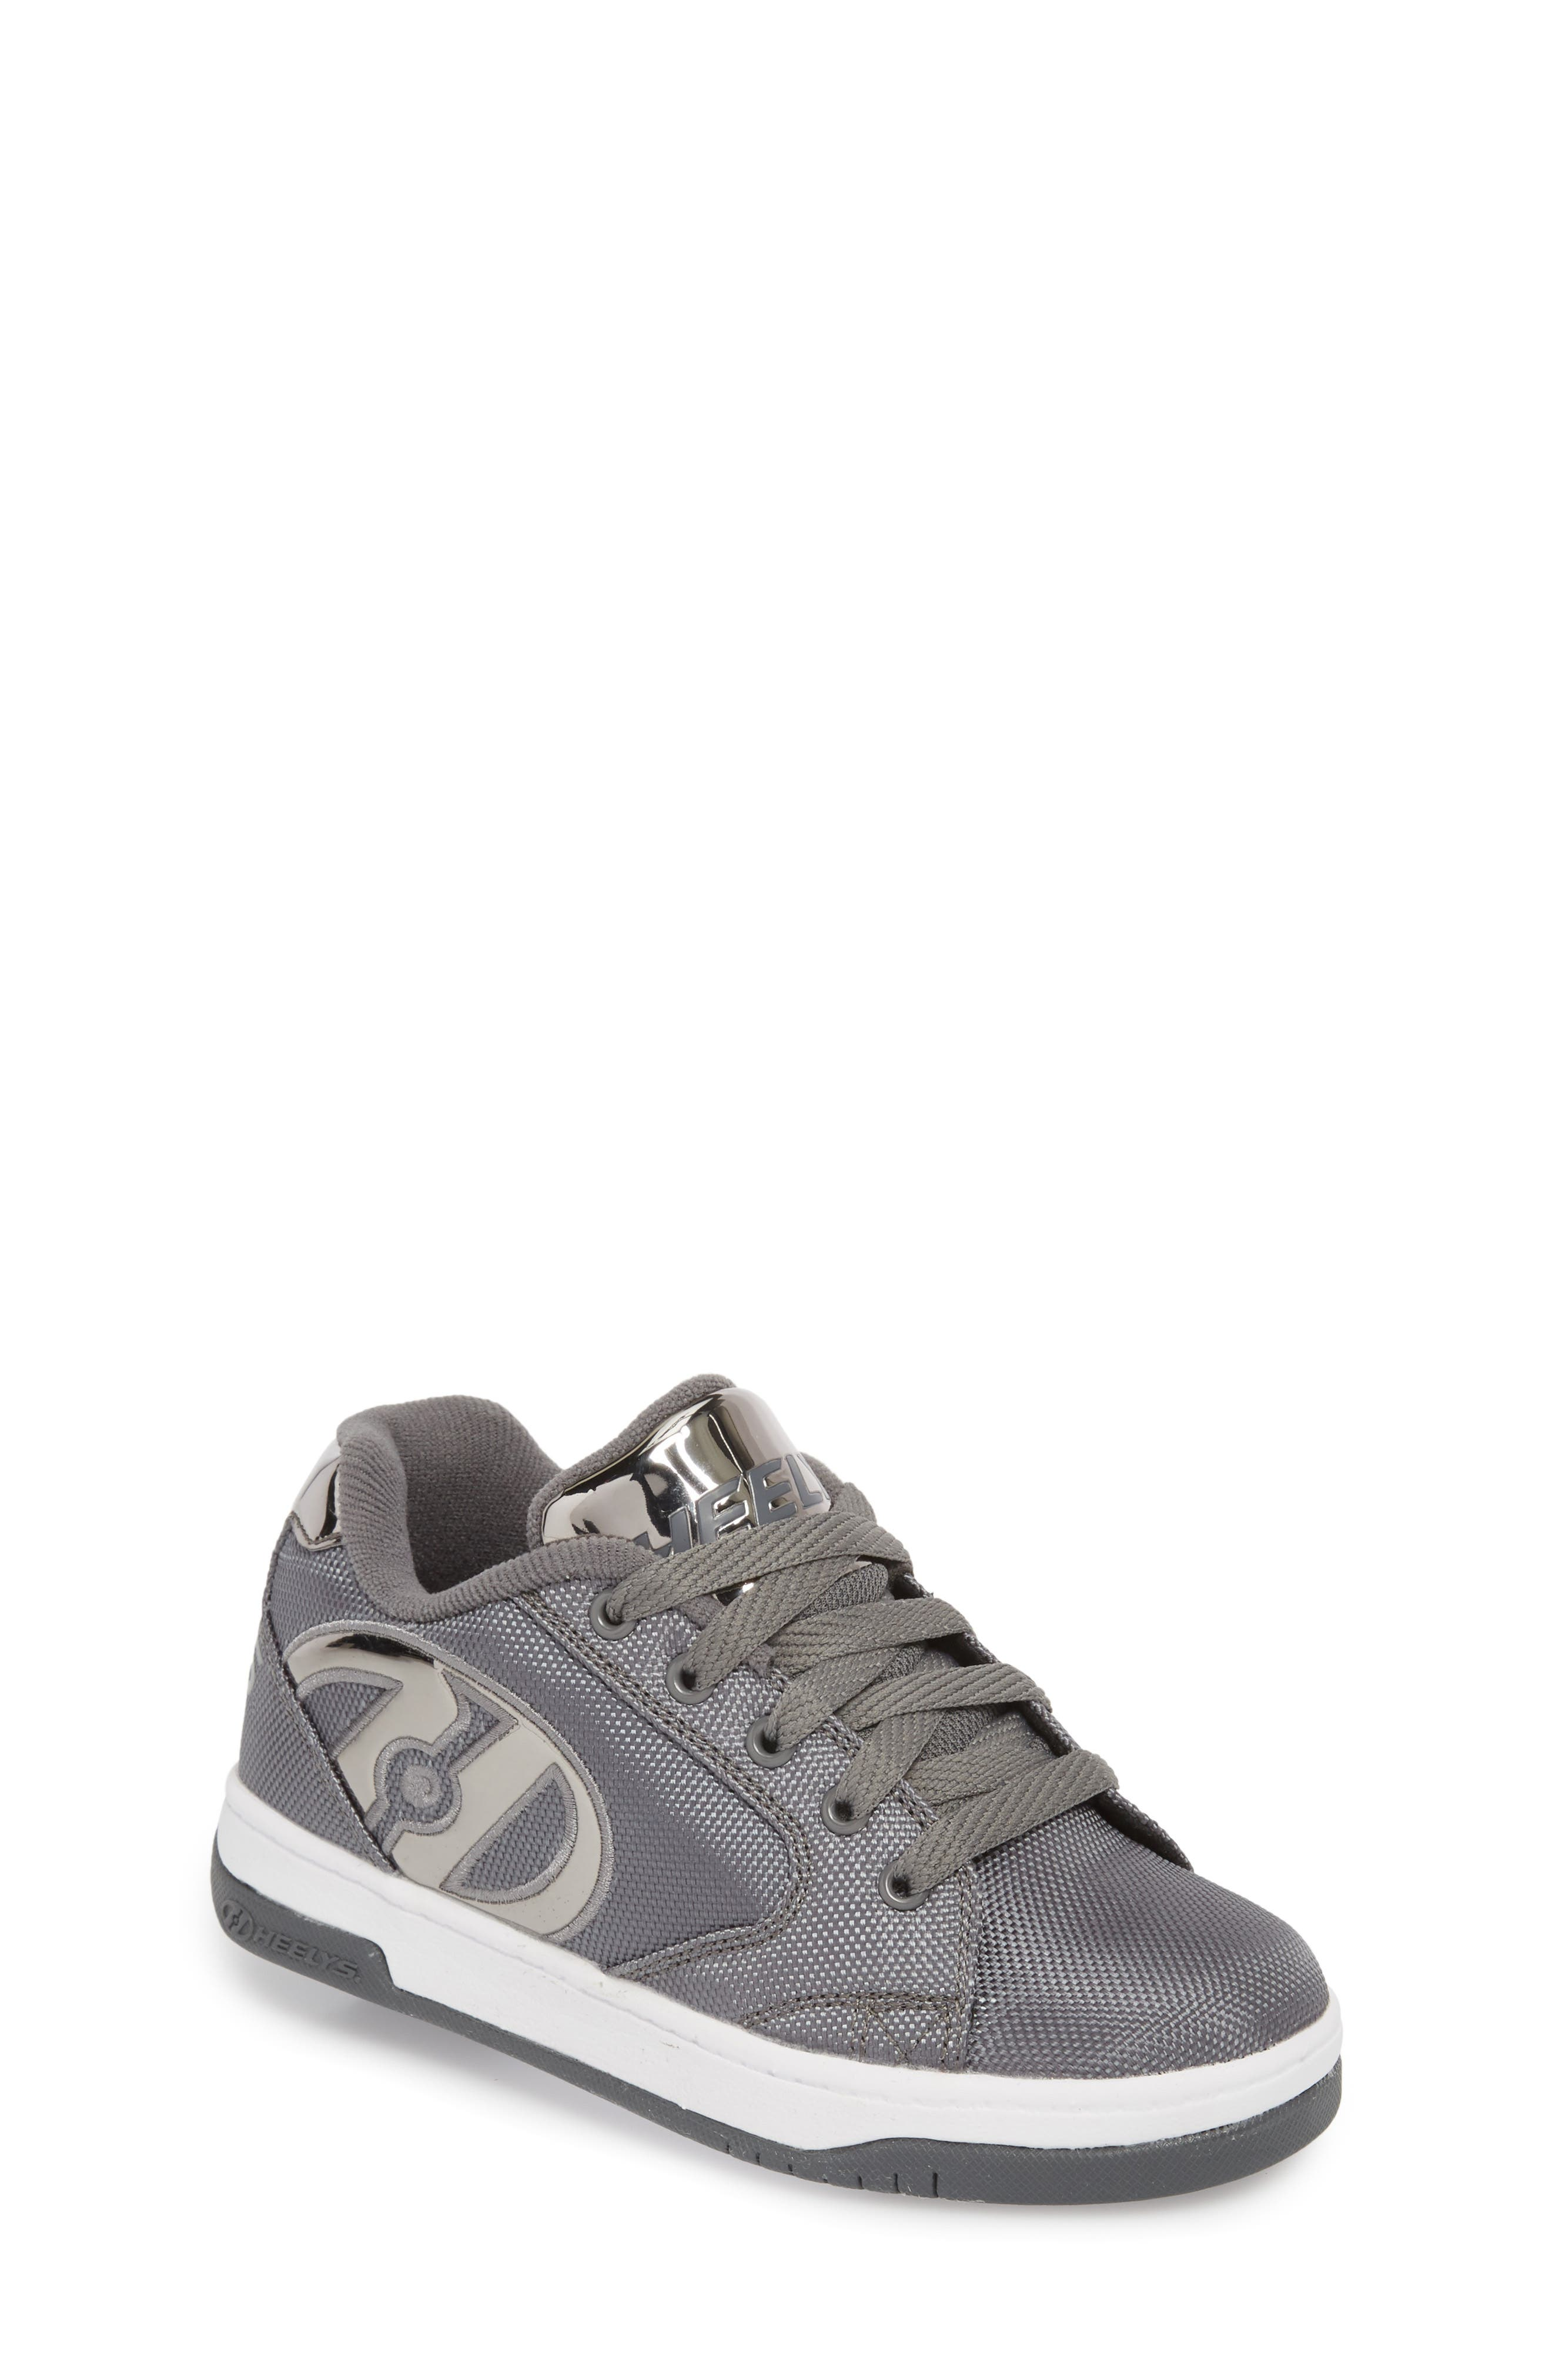 Heels Propel Ballistic Sneaker,                             Main thumbnail 1, color,                             CHARCOAL/ PEWTER